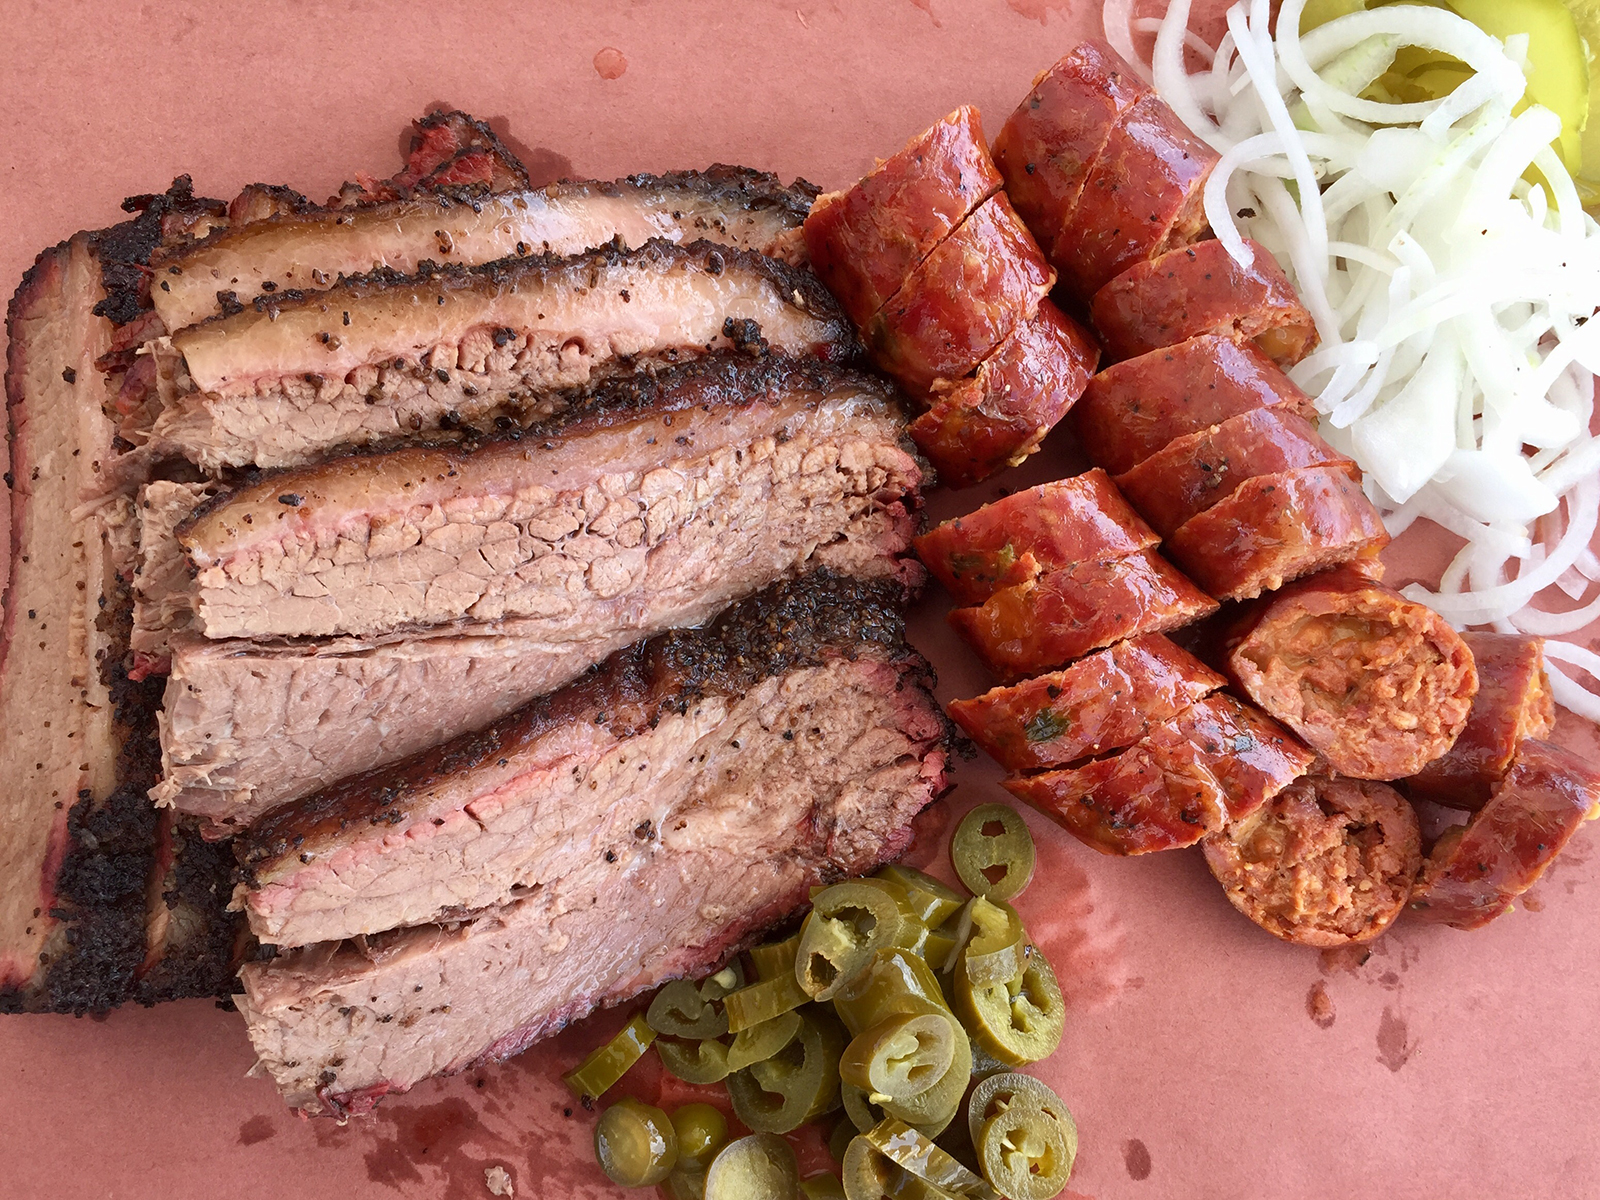 Guess Family Barbecue's brisket and jalapeño cheddar sausage.